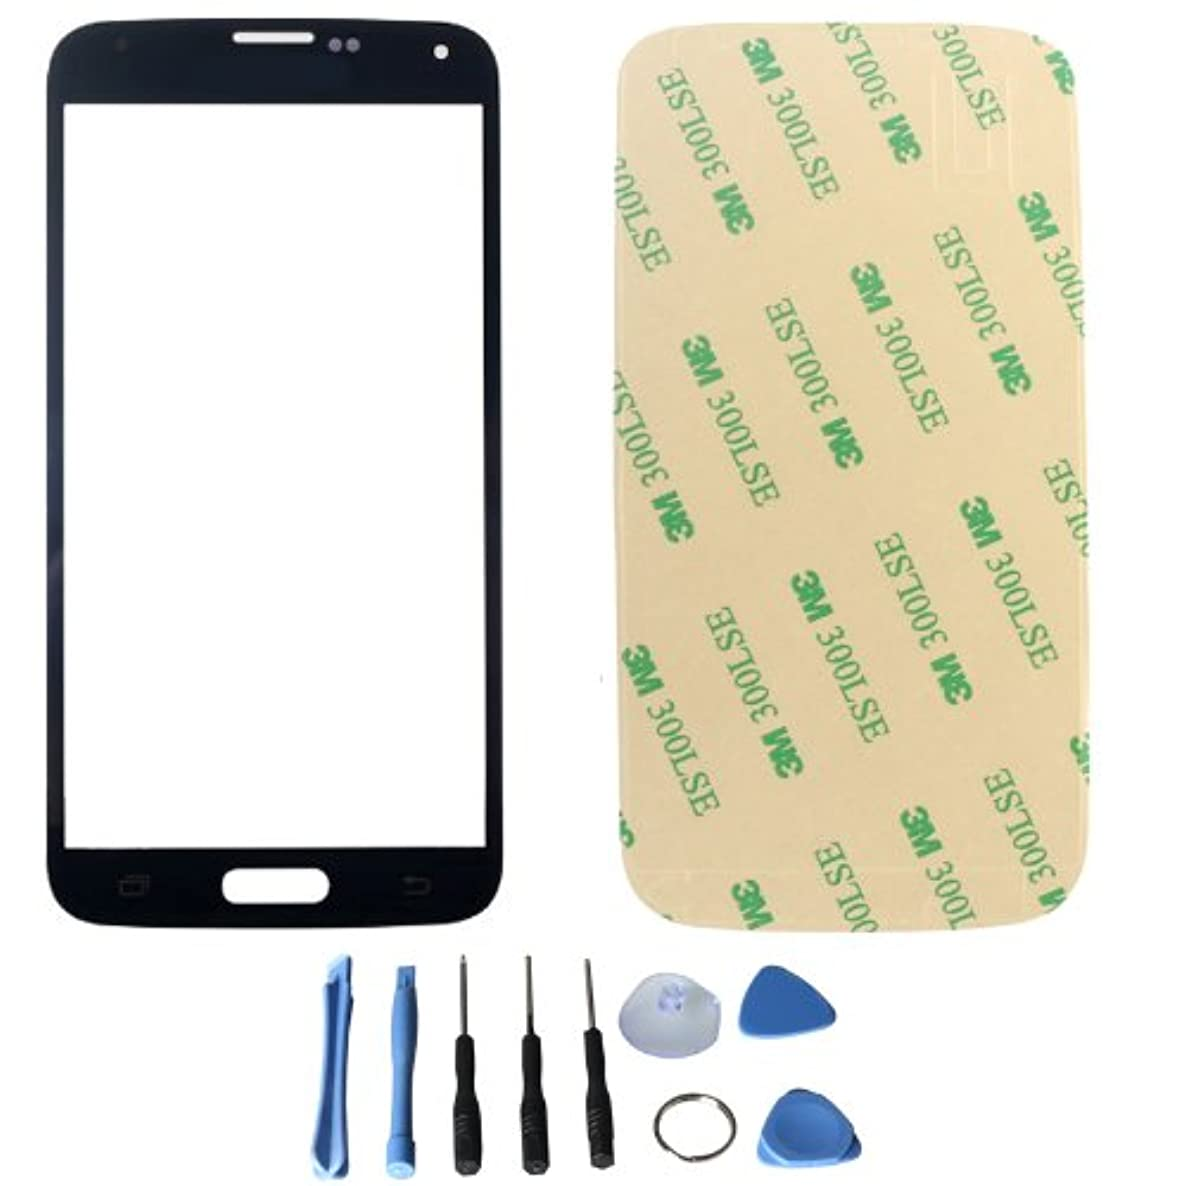 Front Screen glass lens for Samsung Galaxy S5 i9600 G900 with free tools (Not include LCD) (Black + 3M Adhesive)